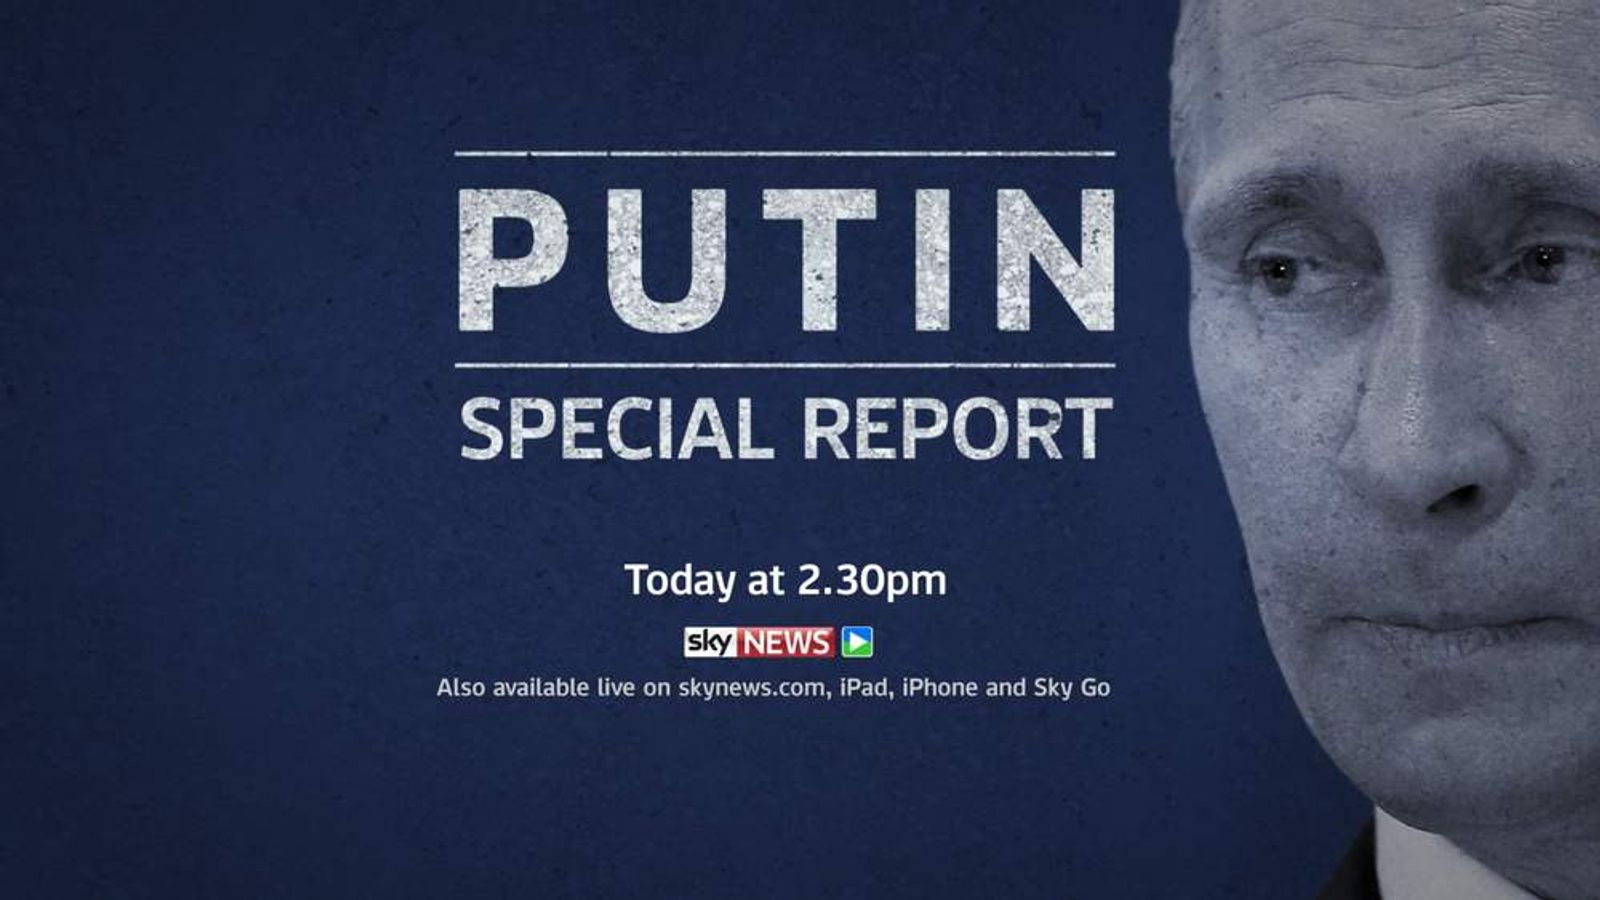 Watch a special report on Vladimir Putin today at 2.30pm